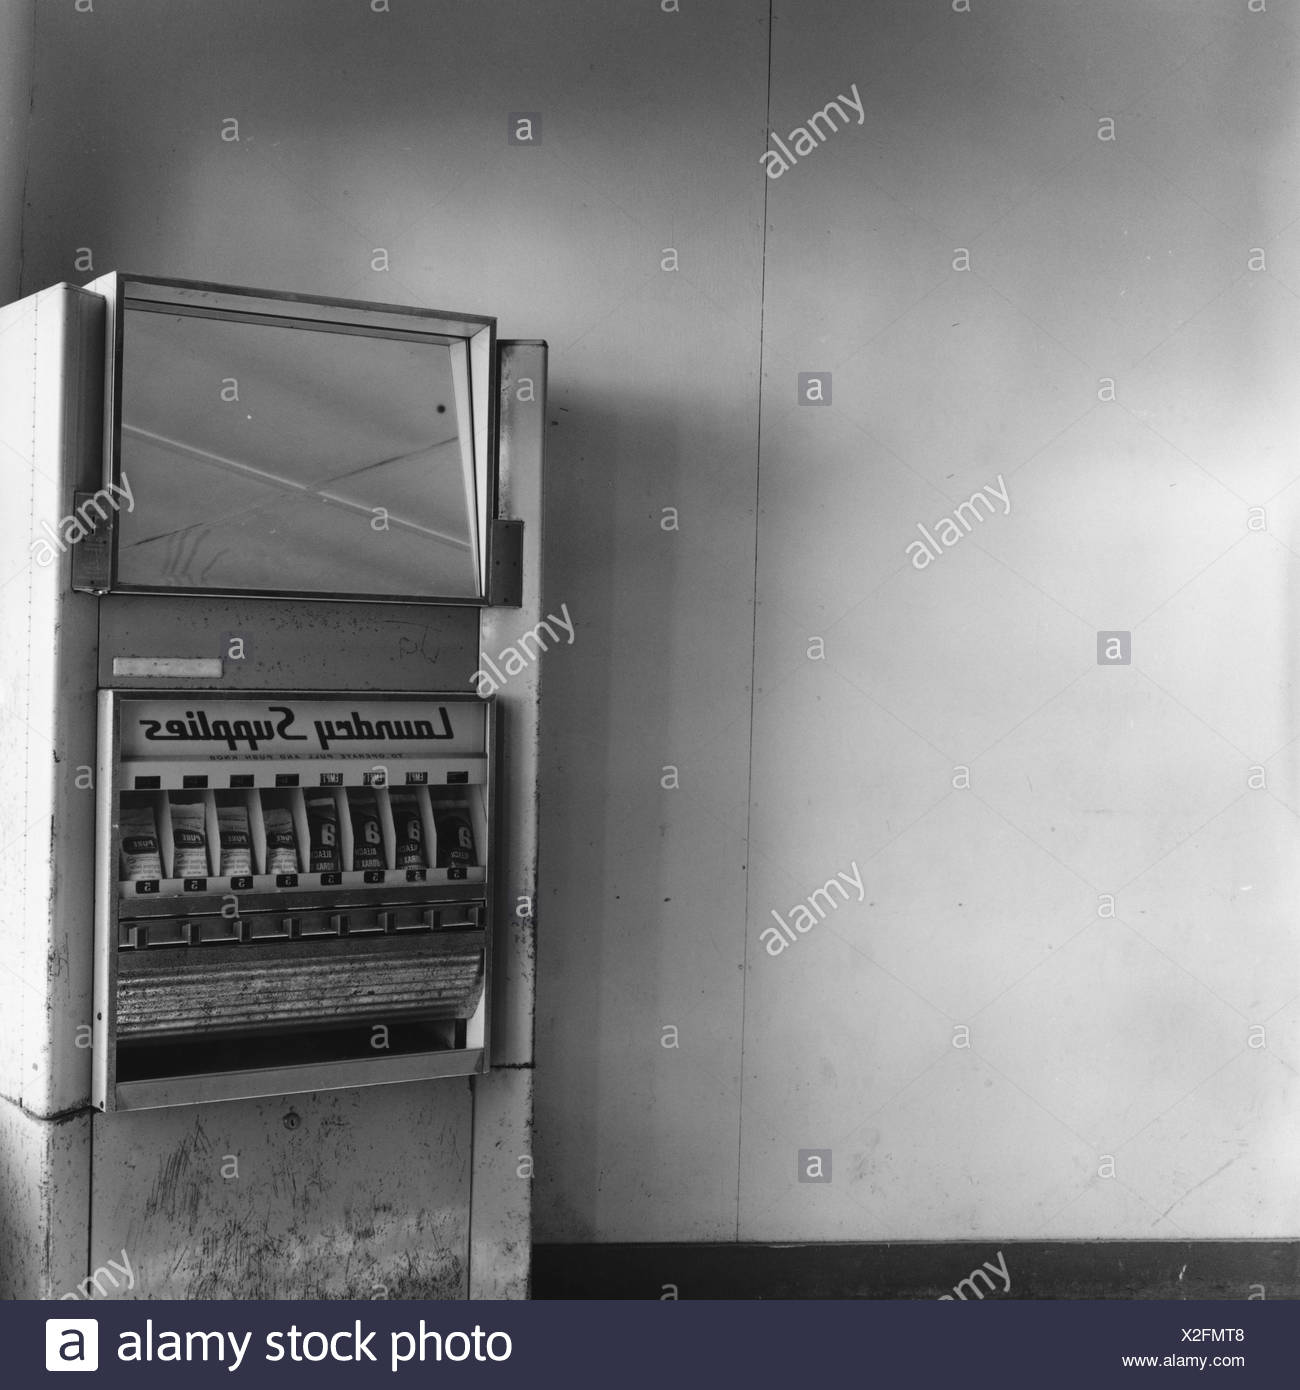 Old laundry supplies dispenser - Stock Image